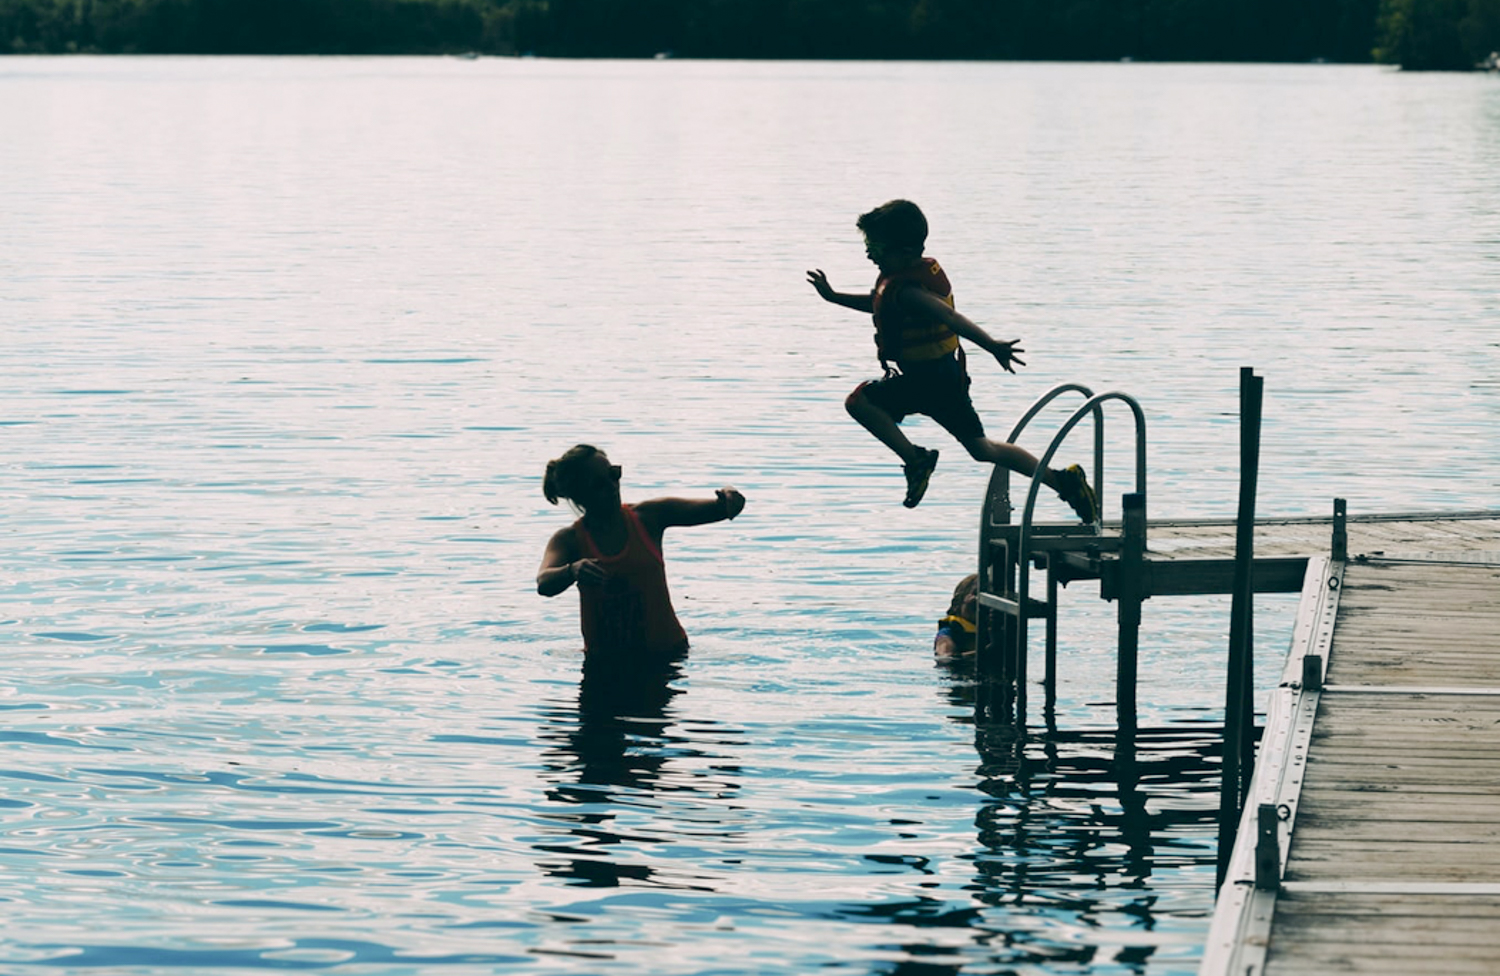 A Young Boy Jumping in a Lake